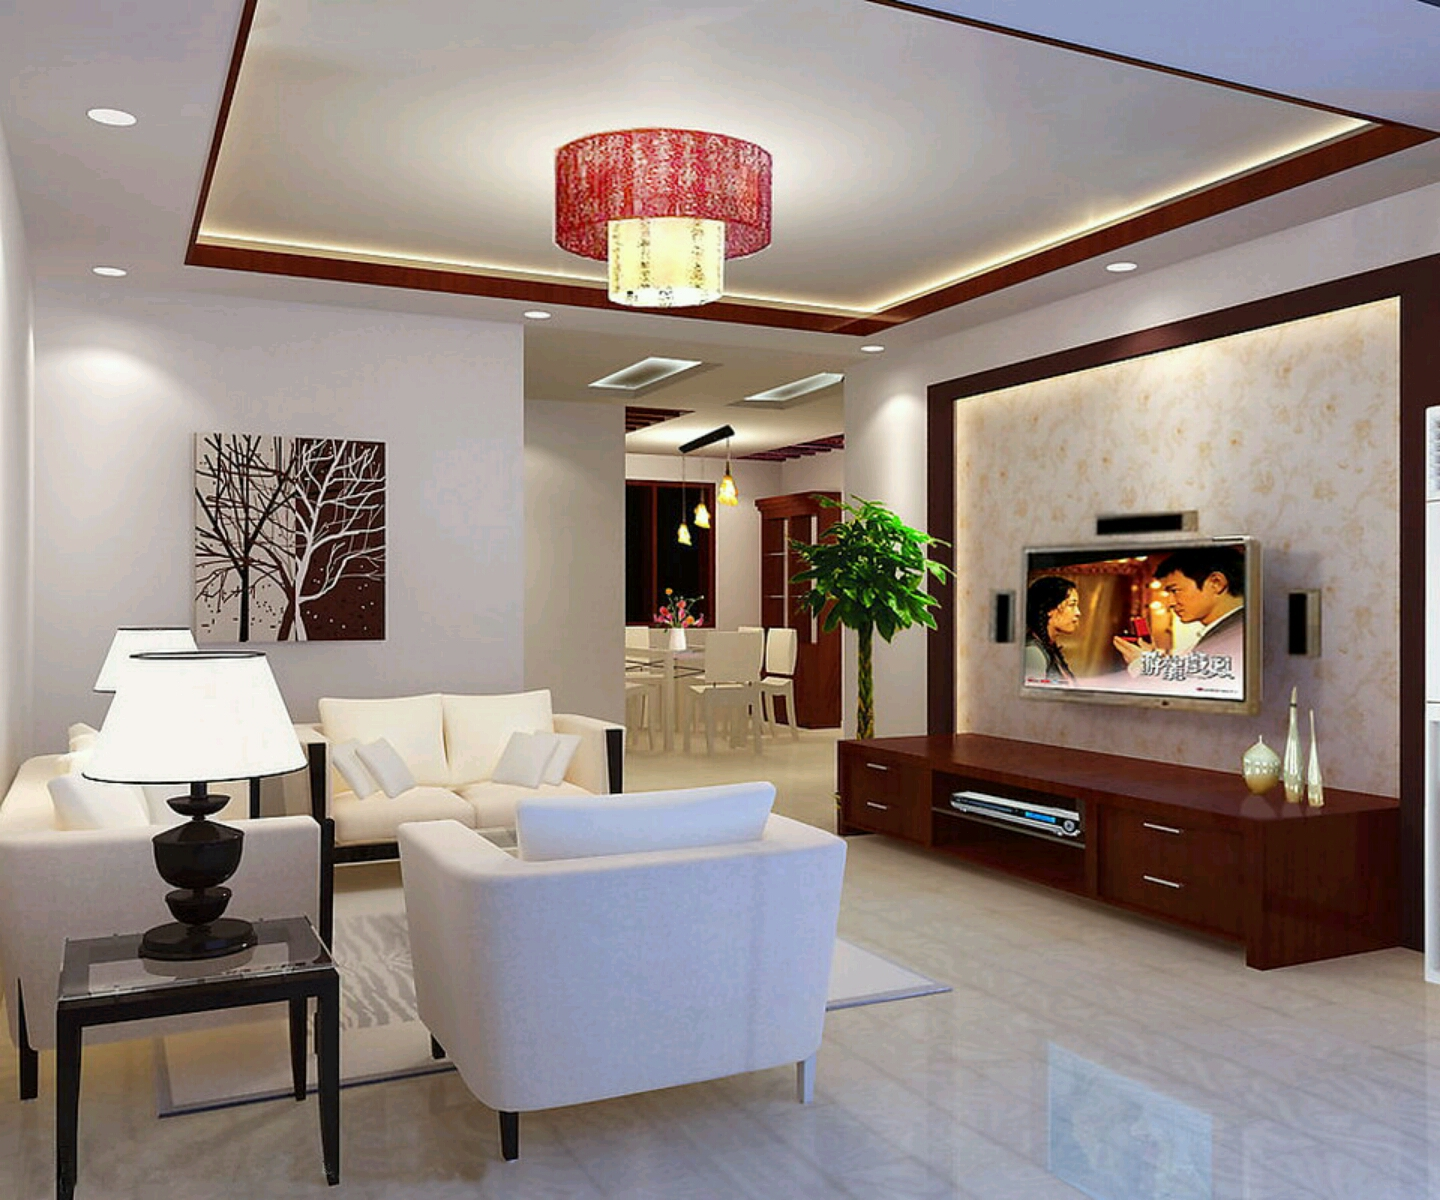 Modern interior decoration living rooms ceiling designs ideas new home designs - Modern intiror room ...